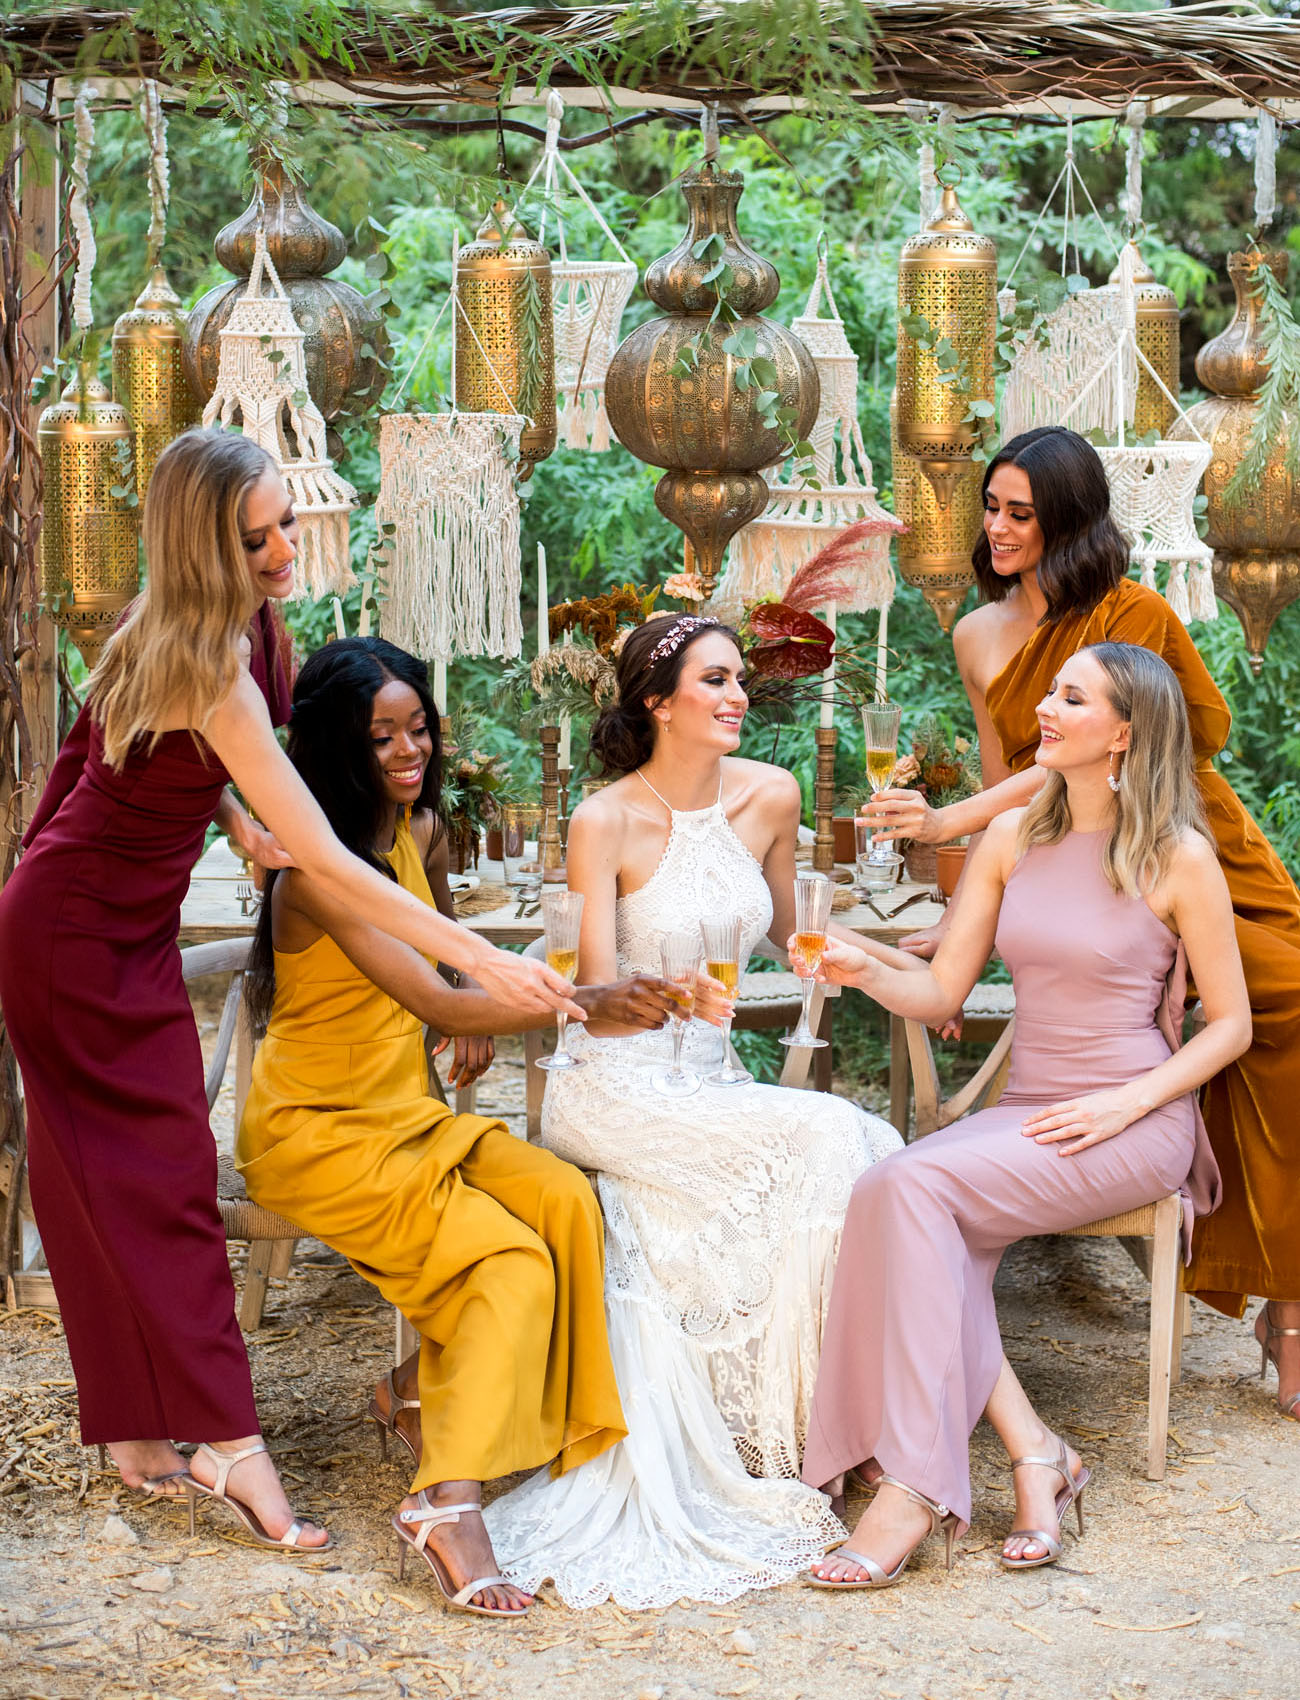 This wedding shoot took place in ancient city of Damask, with Arabian spice colors and lots of boho details